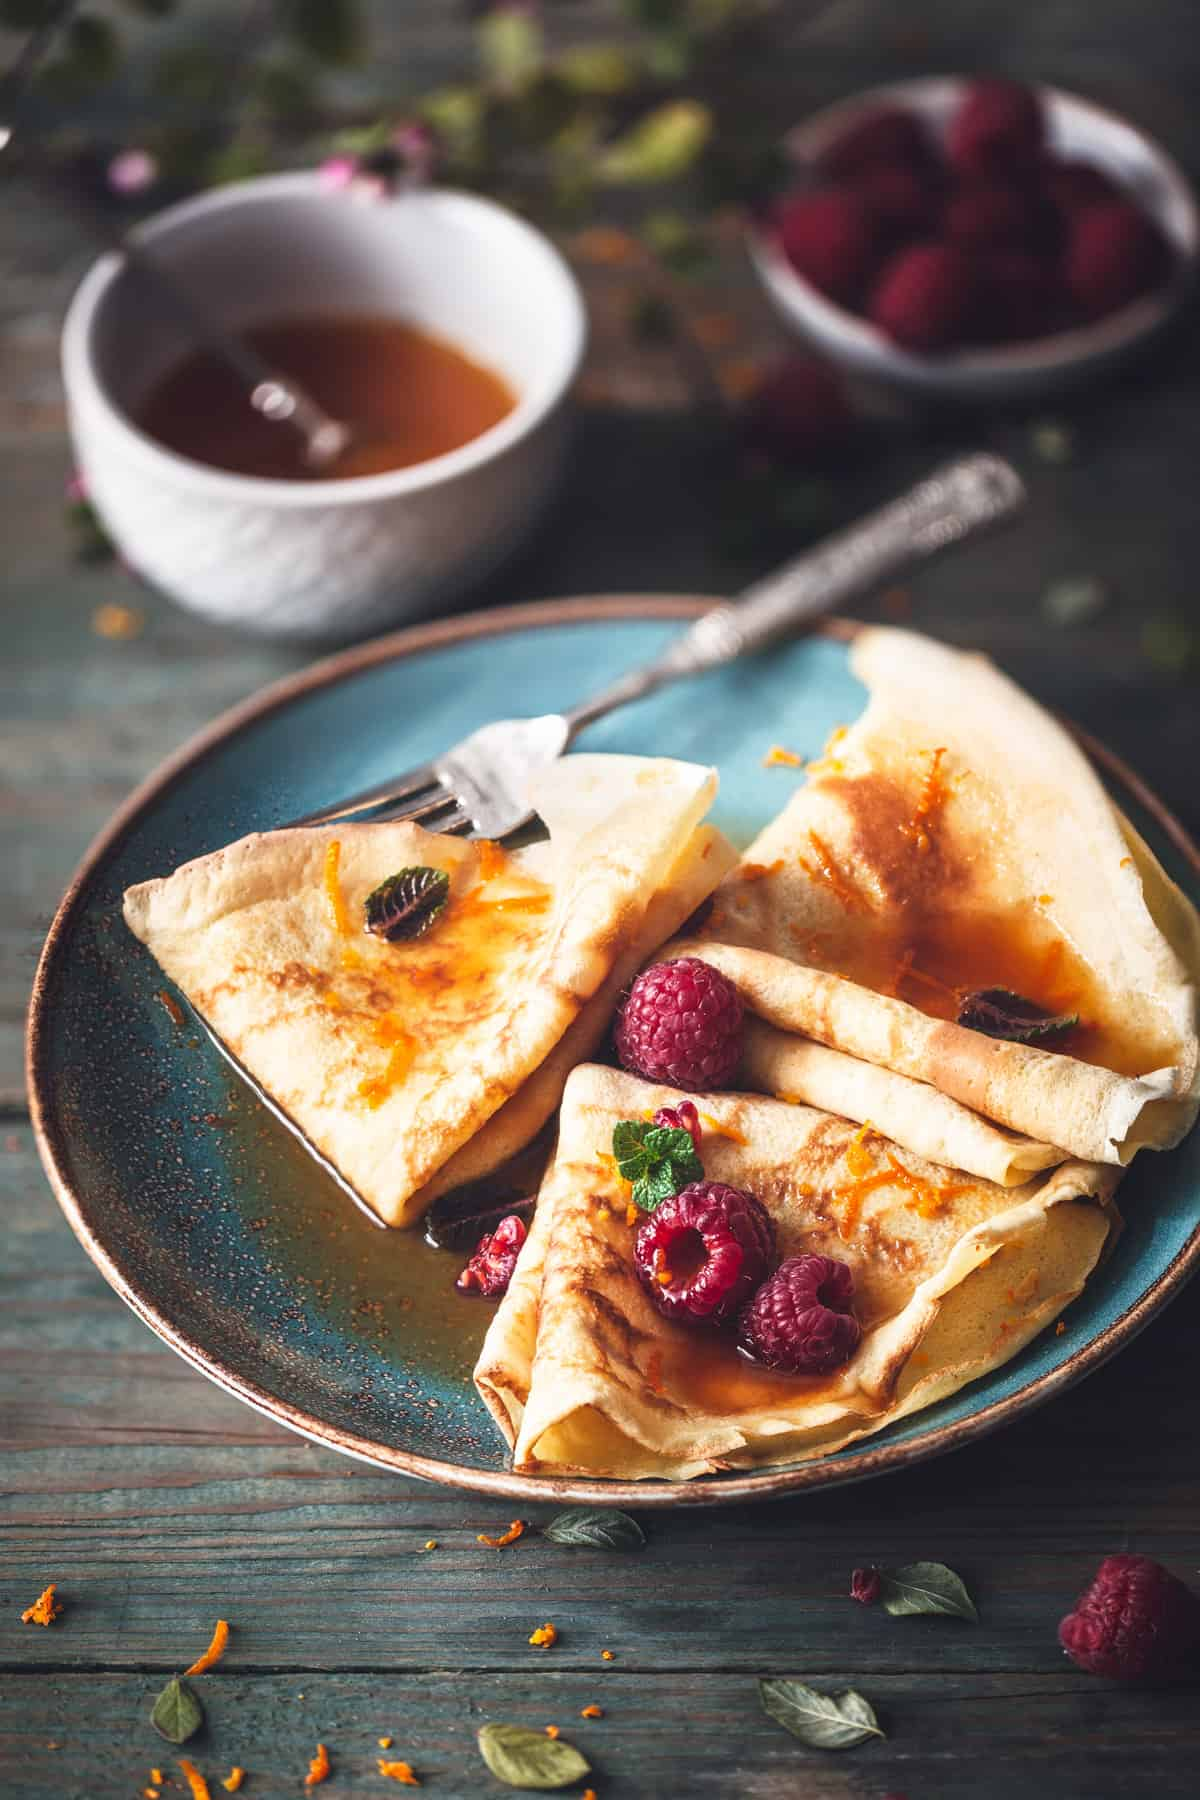 low angle photo of crepes on a blue plate with syrup. A bowl of raspberries is on the side